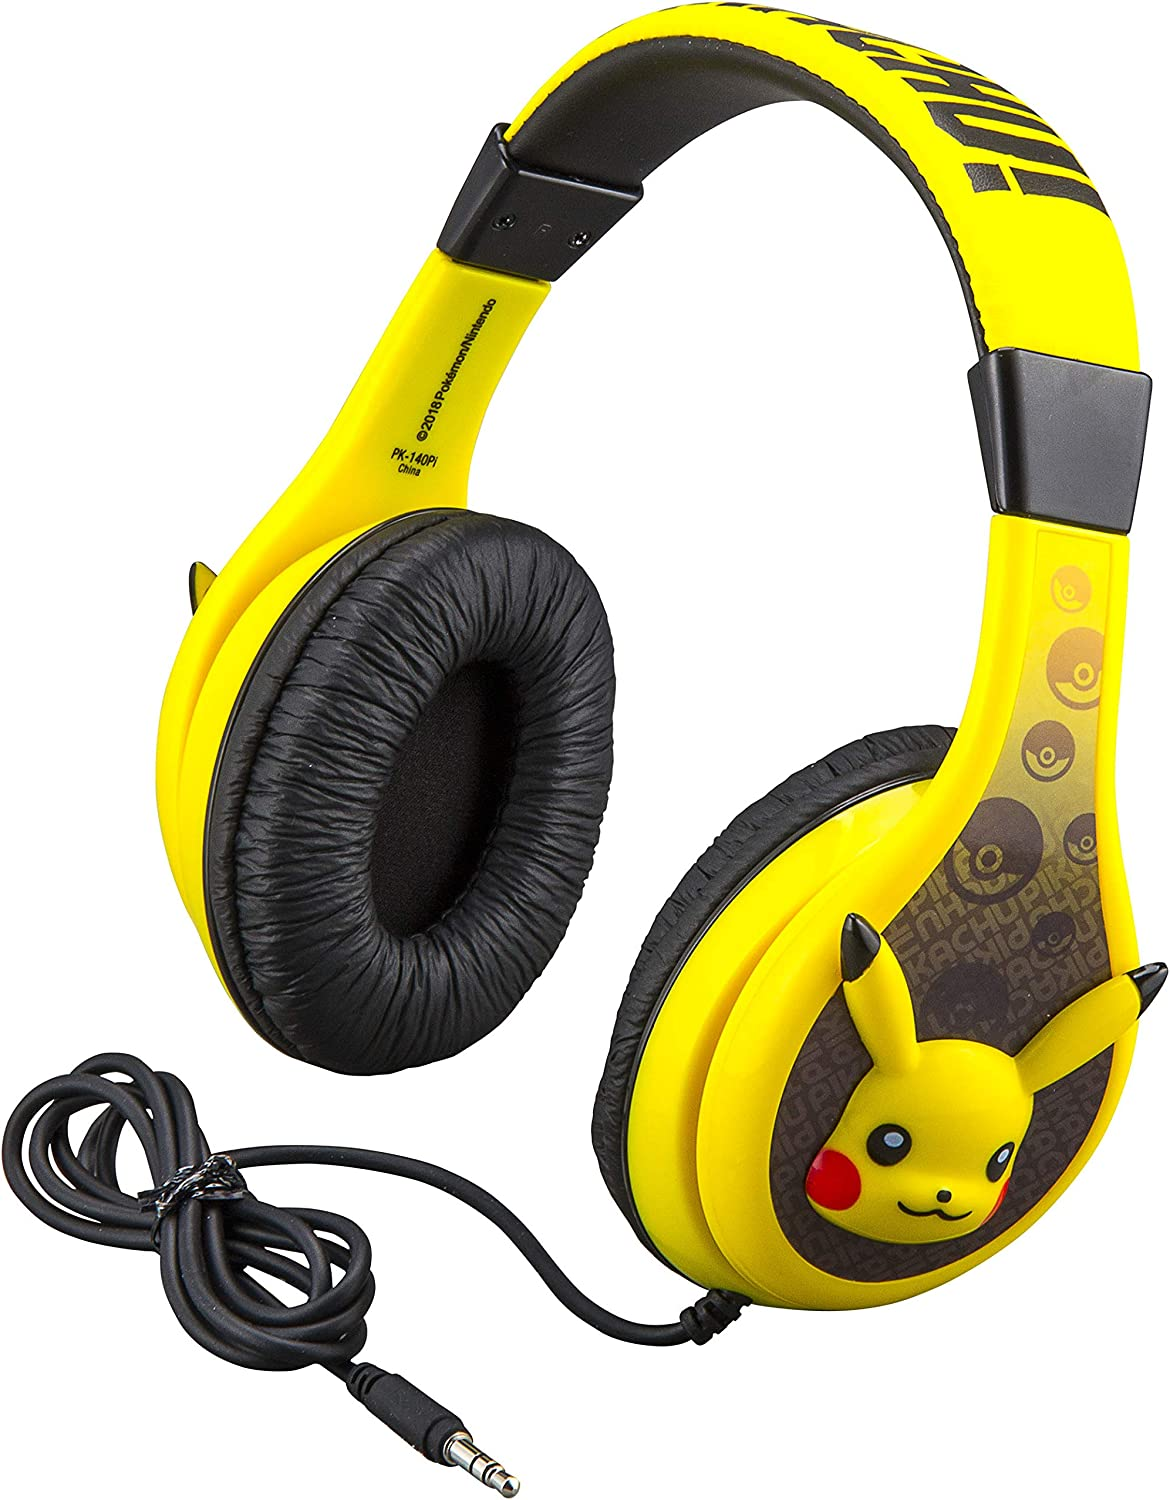 Pokemon Pikachu Kids Headphones This is the best headphones for the kids school look amazing colour and most comfortable for kids